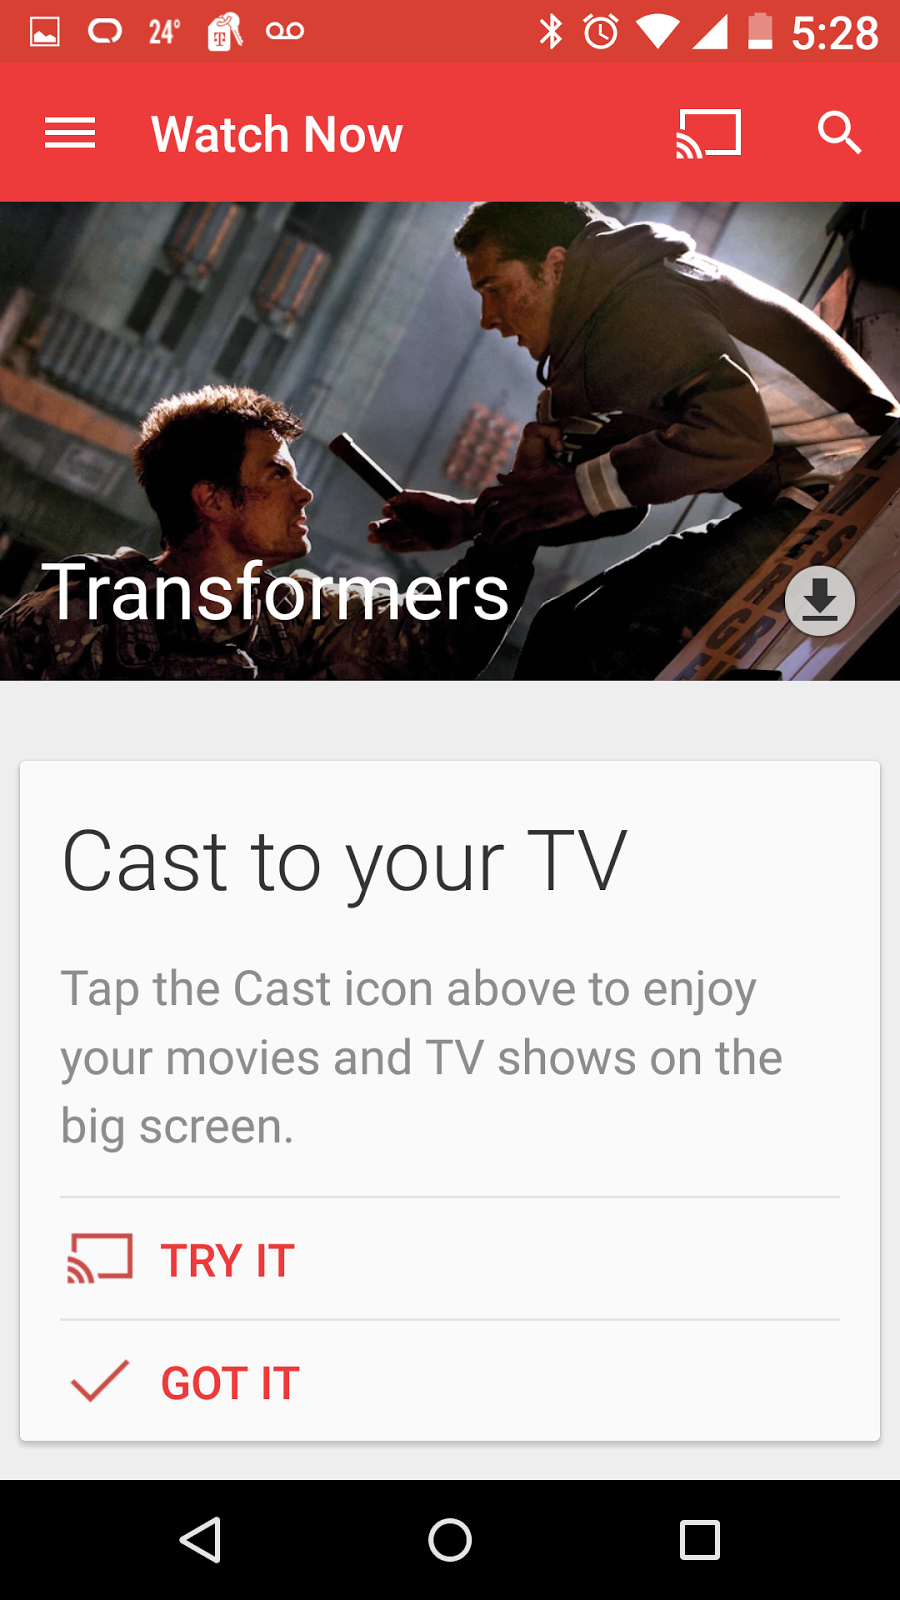 free is my life free download of transformers movie in the google